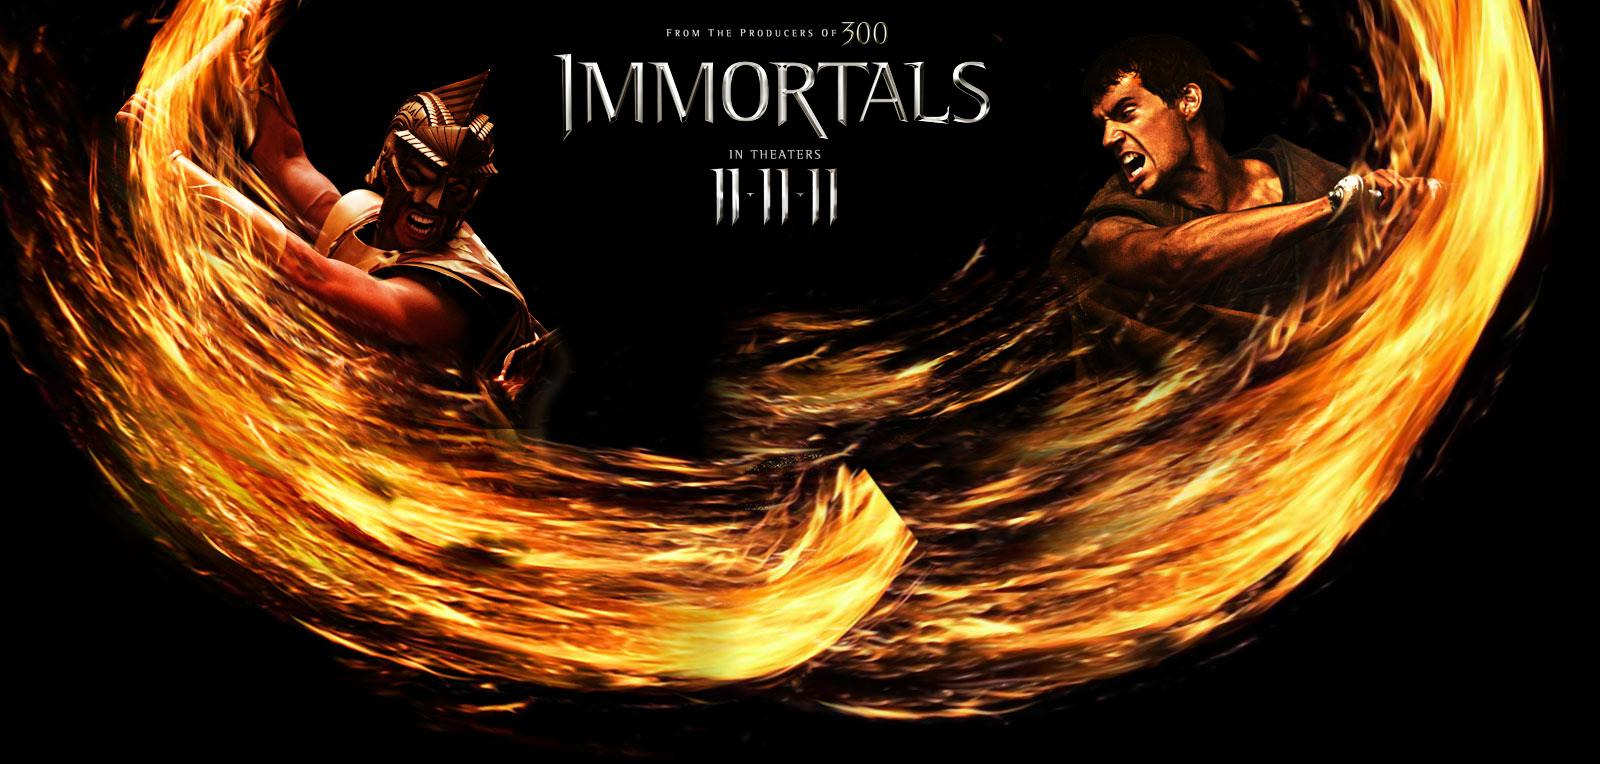 Immortals Movie Poster Immortals Movie Poster Film